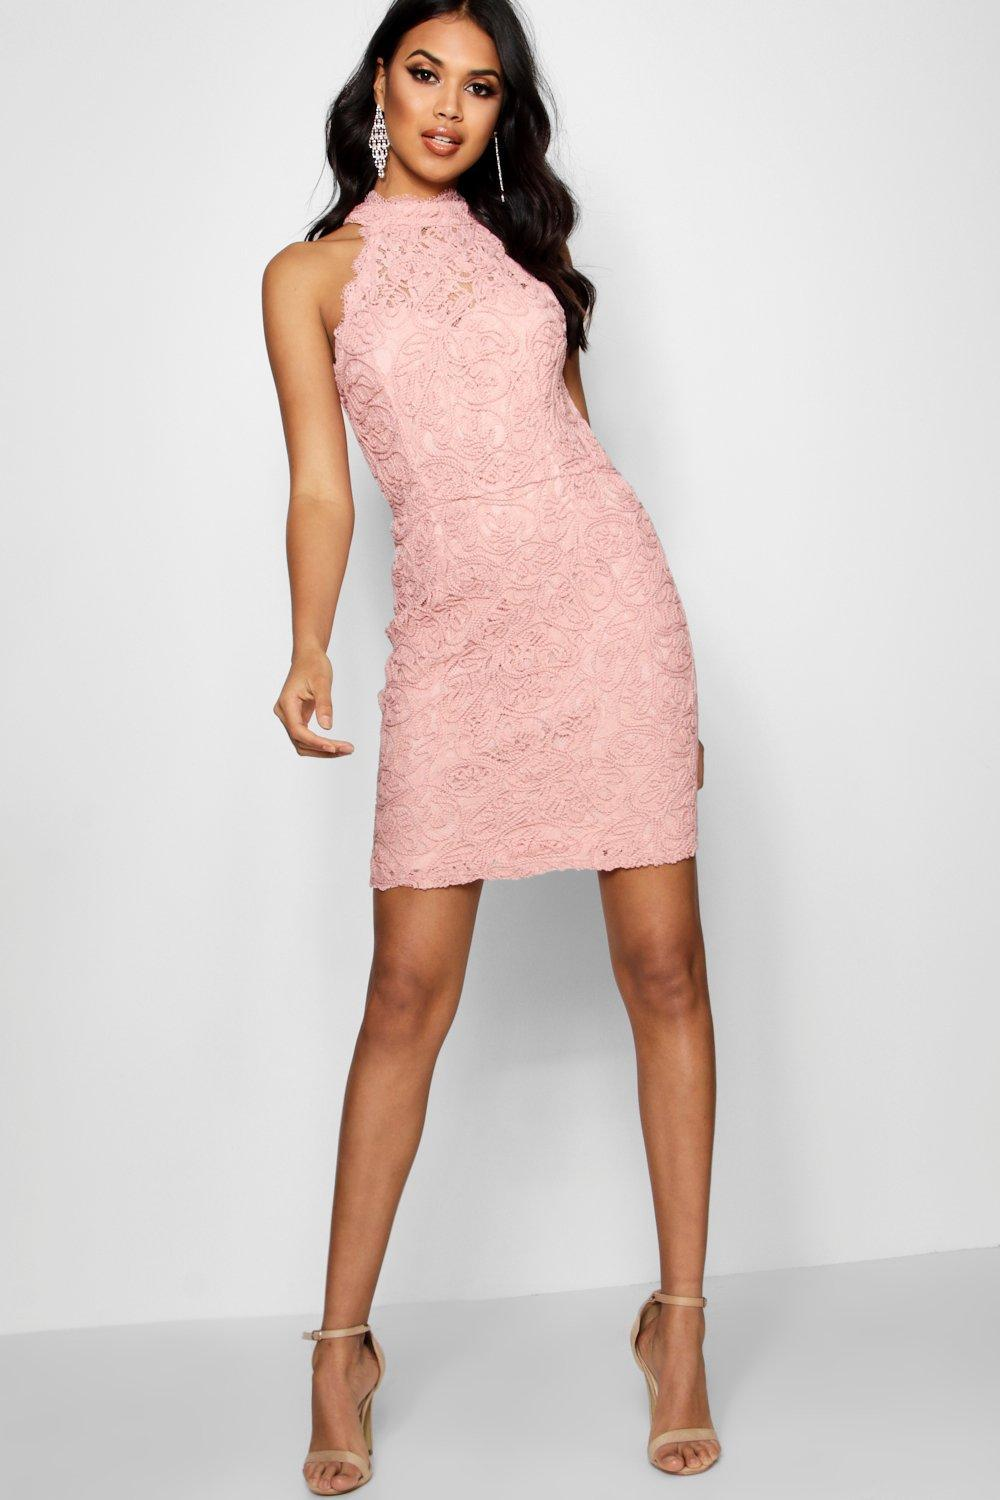 Boohoo Boutique Eyelash Lace Bodycon Dress in Pink - Lyst 29398c171